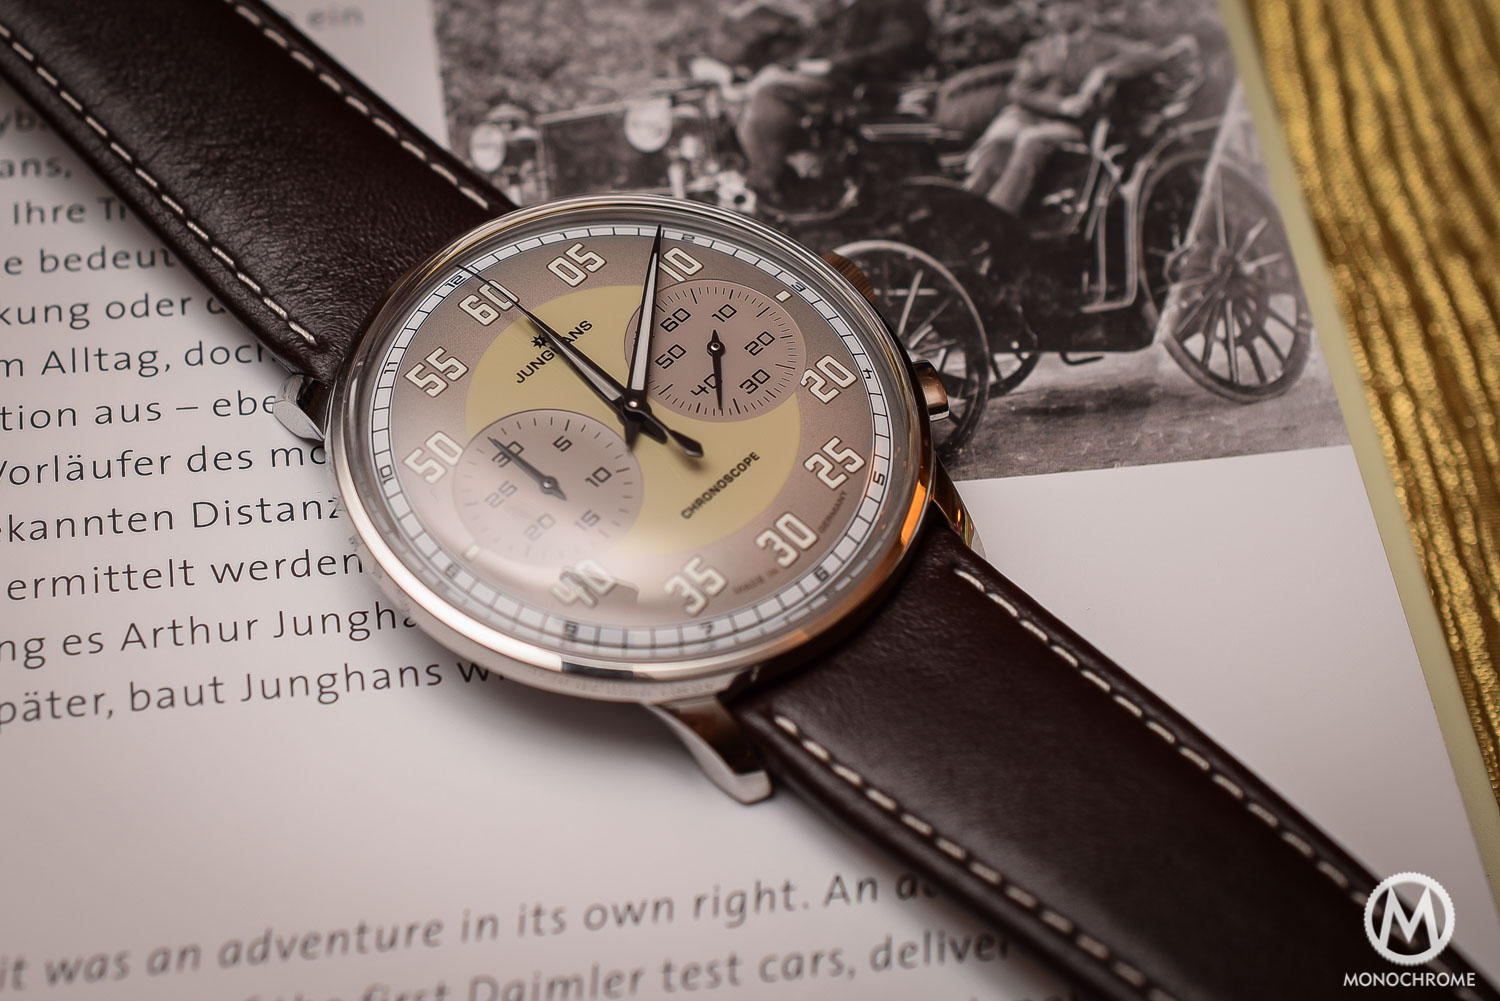 Junghans Meister Driver Chronoscope - Top 5 Watches from Baselworld 2016